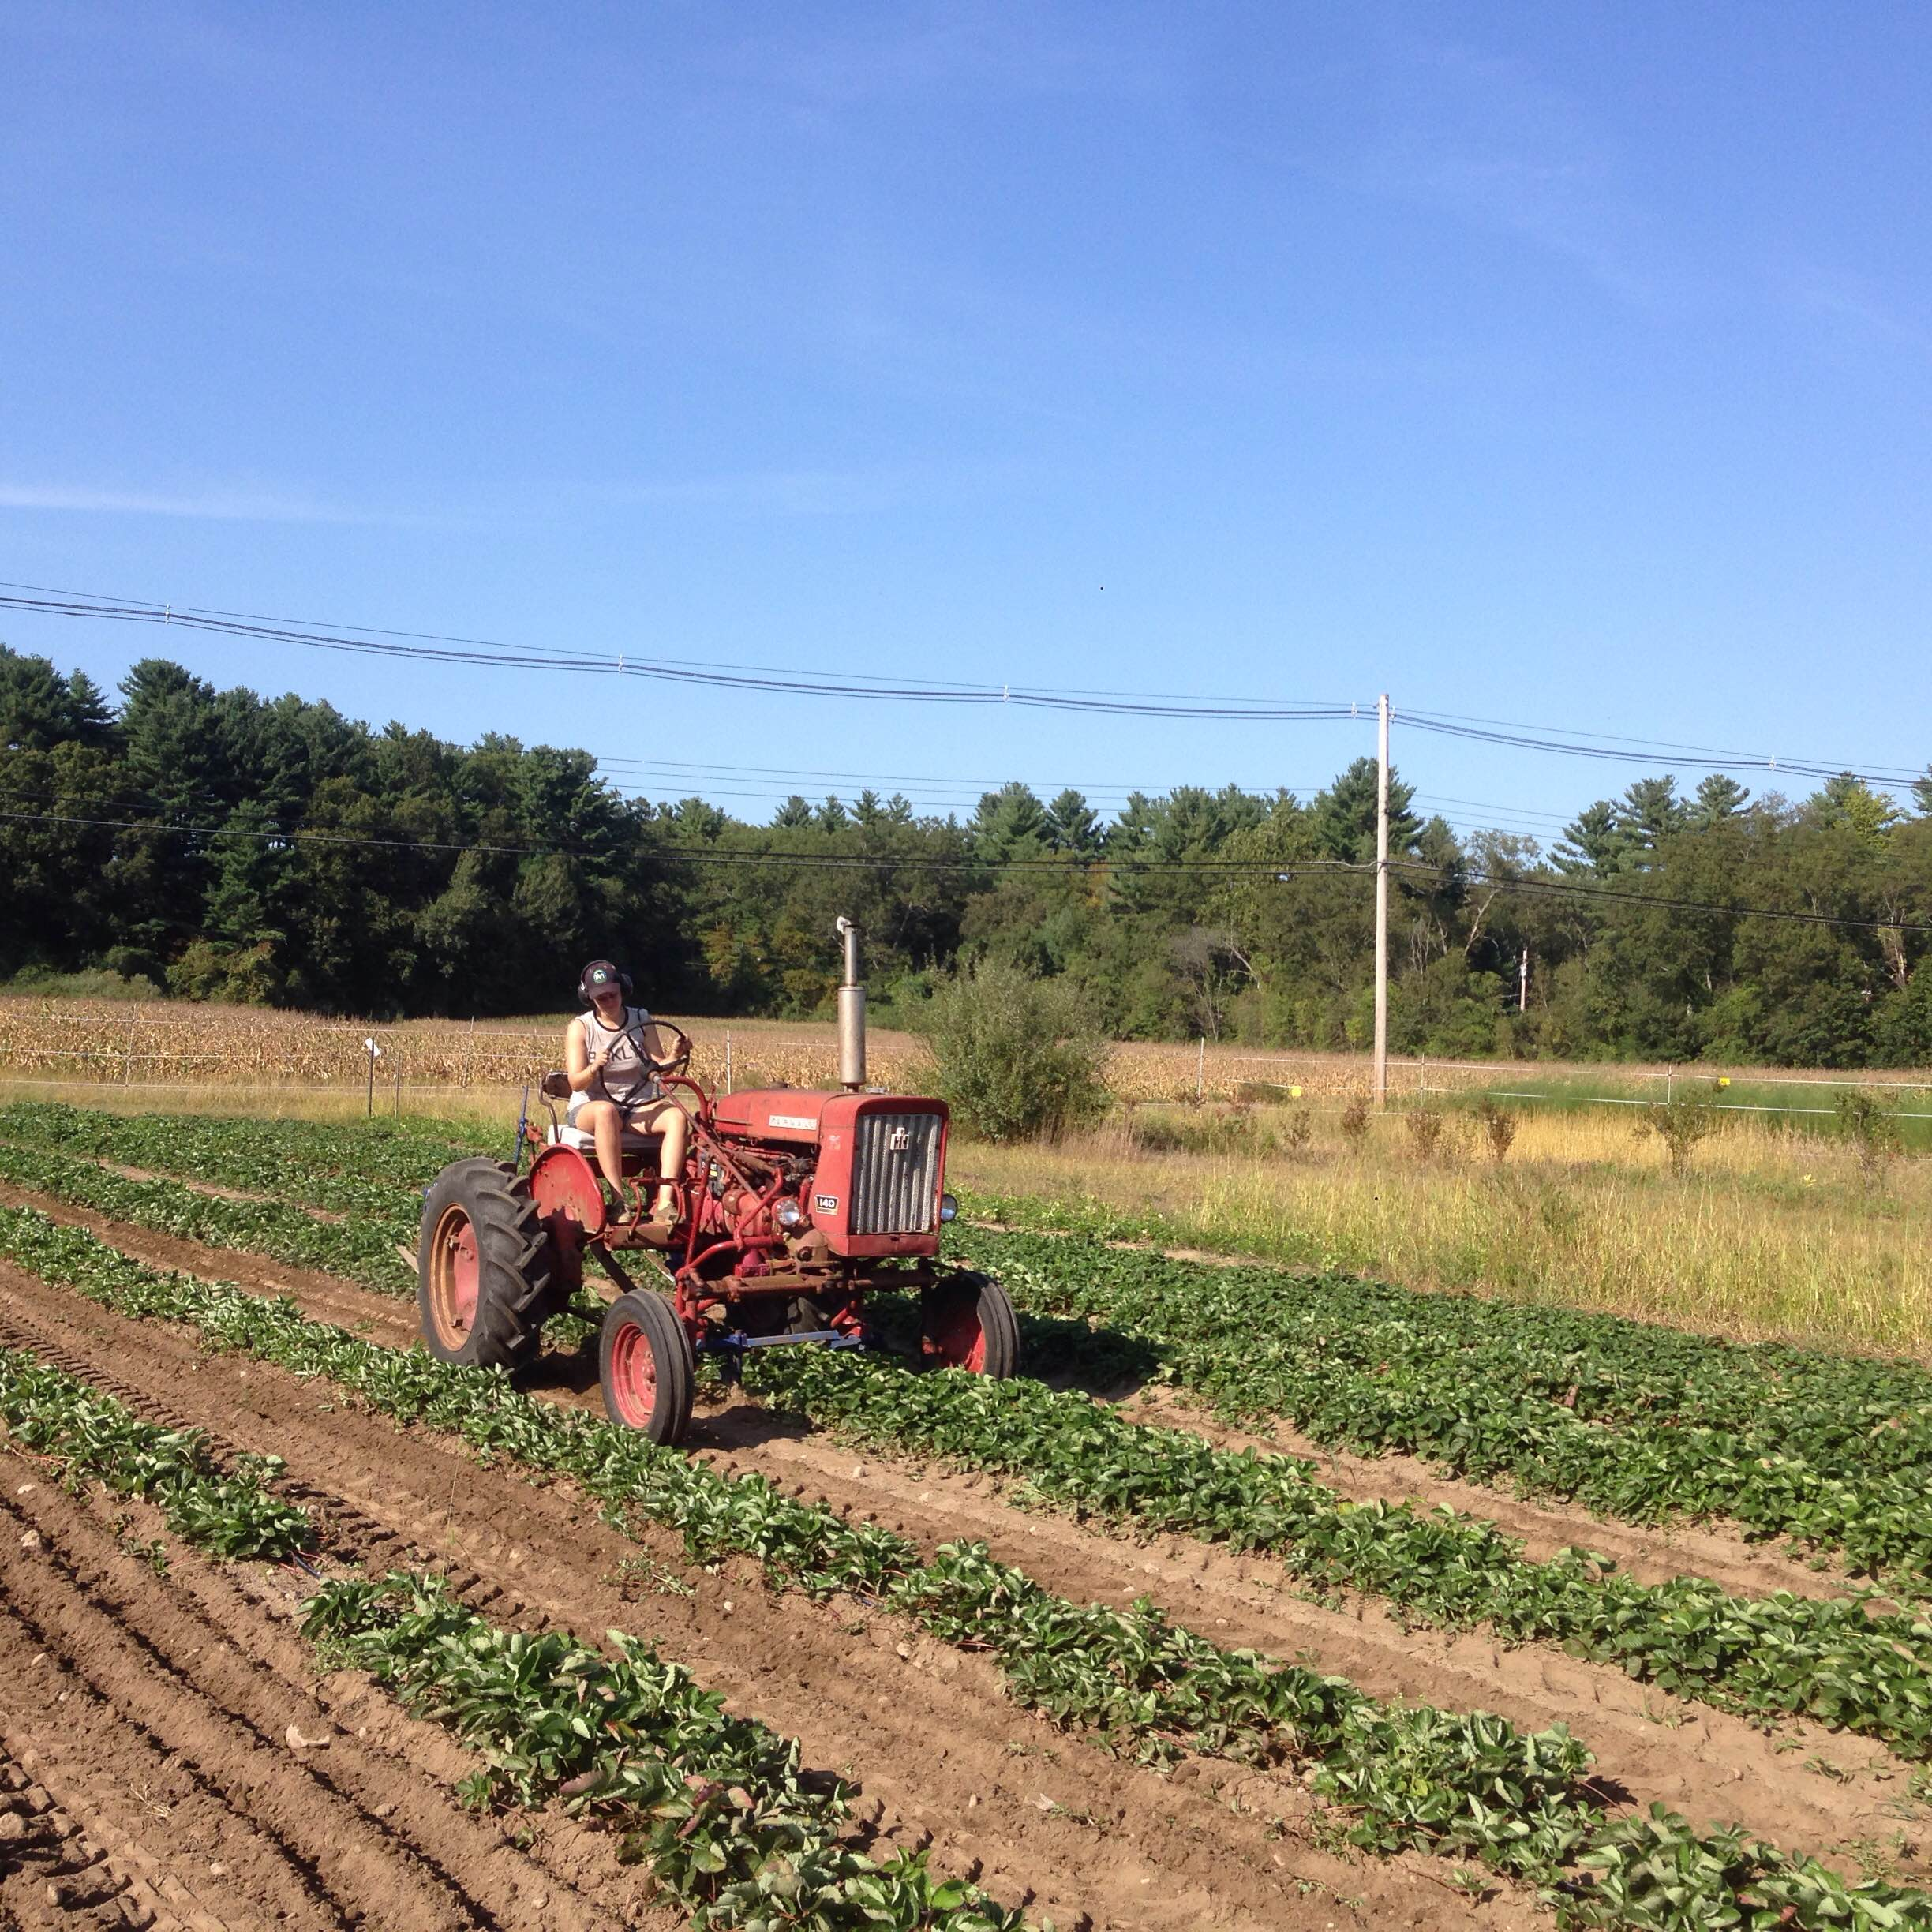 Rachel uses the sweeps to cultivate the 2016 strawberry plants.